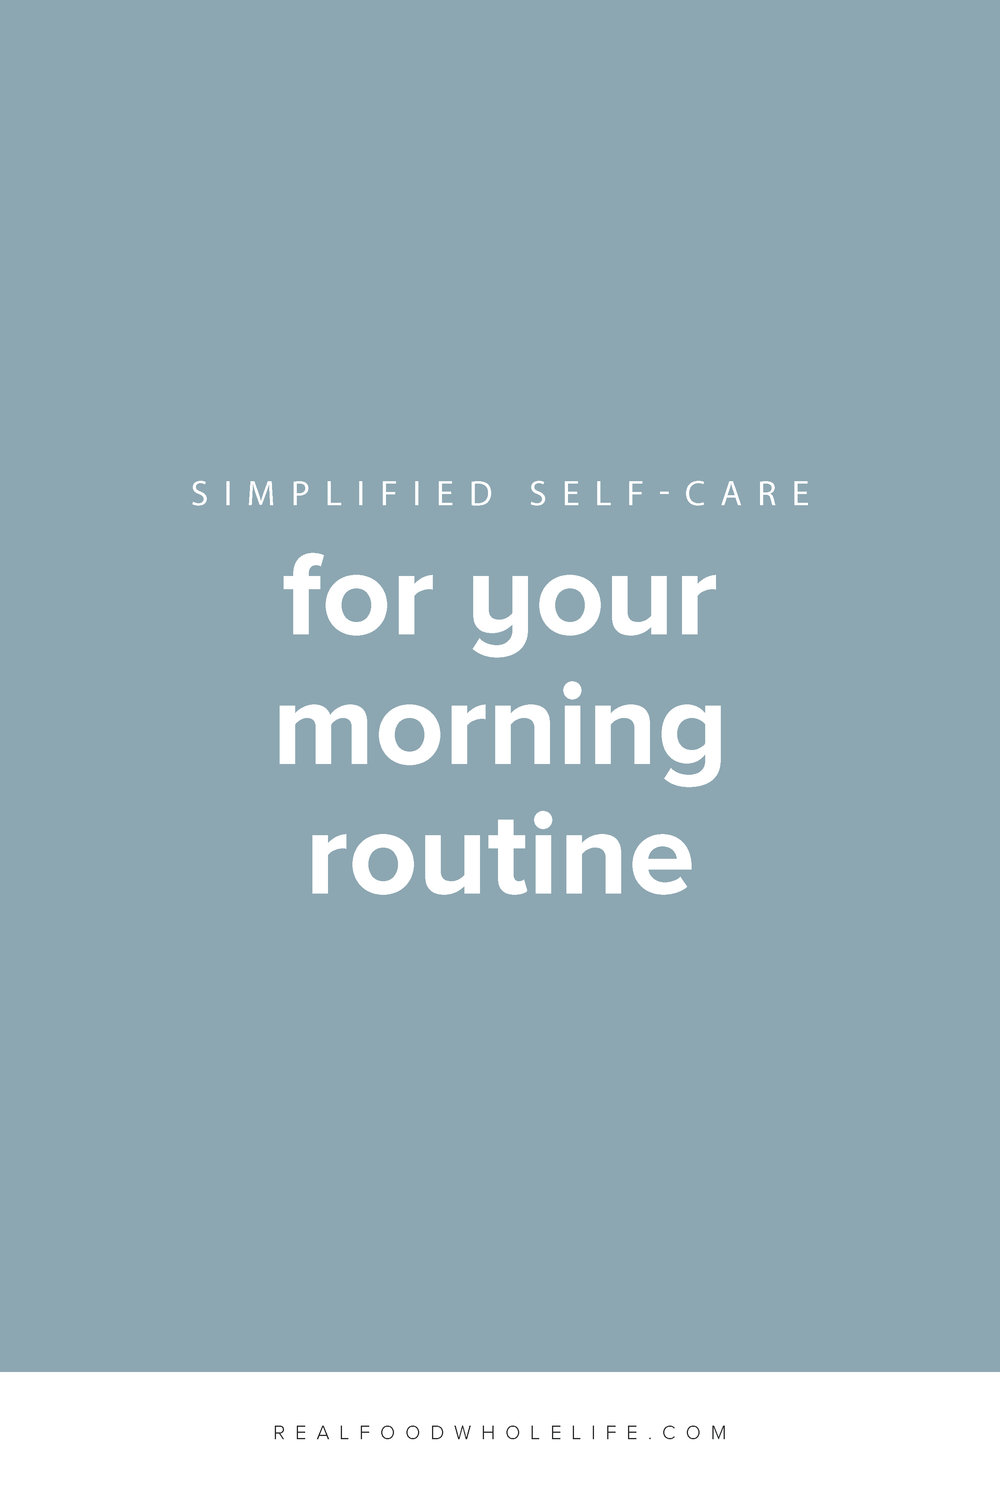 Tips for creating a simplified self-care morning routine.